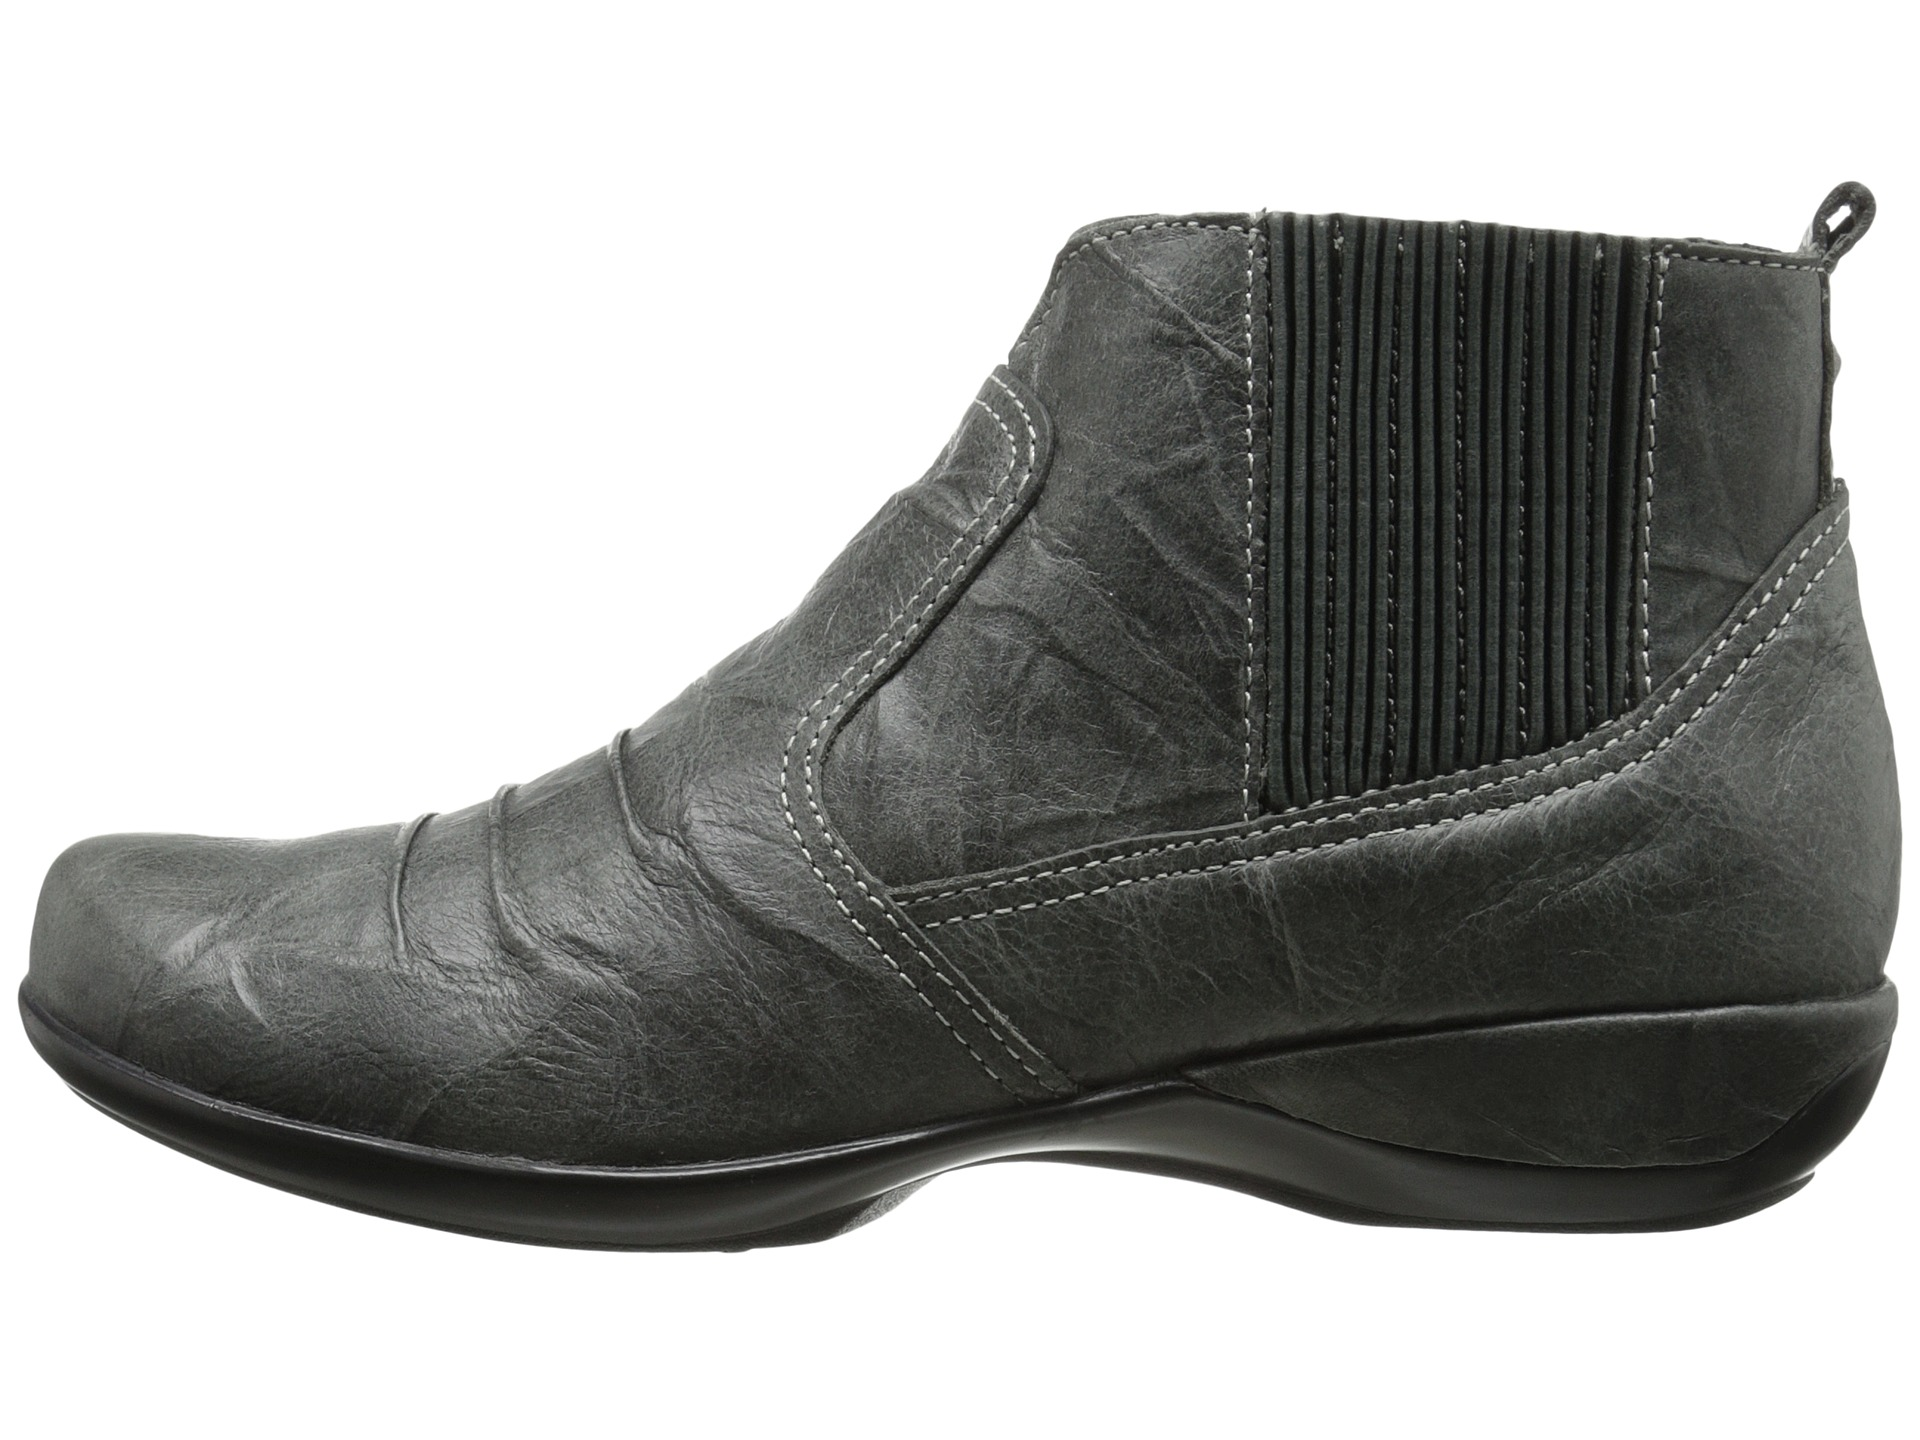 Aetrex Kailey Ankle Boot - Zappos.com Free Shipping BOTH Ways